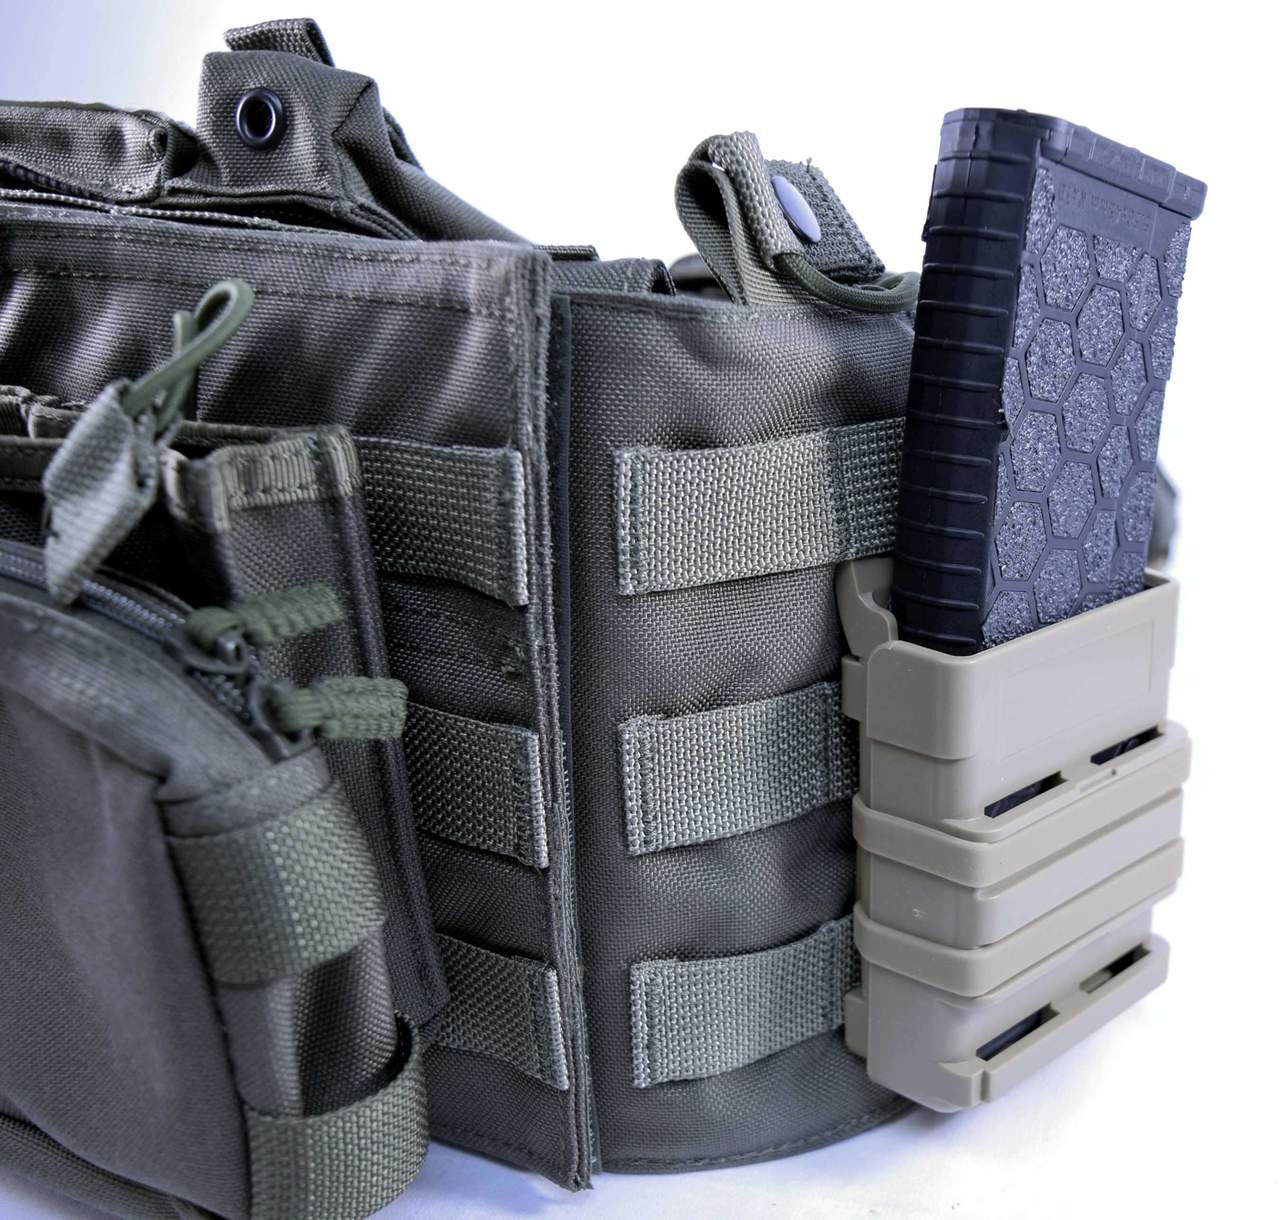 Fast Fang AR Magazine Molle/Belt Mag Holster/Pouch | FDE .223/5.56/5.45